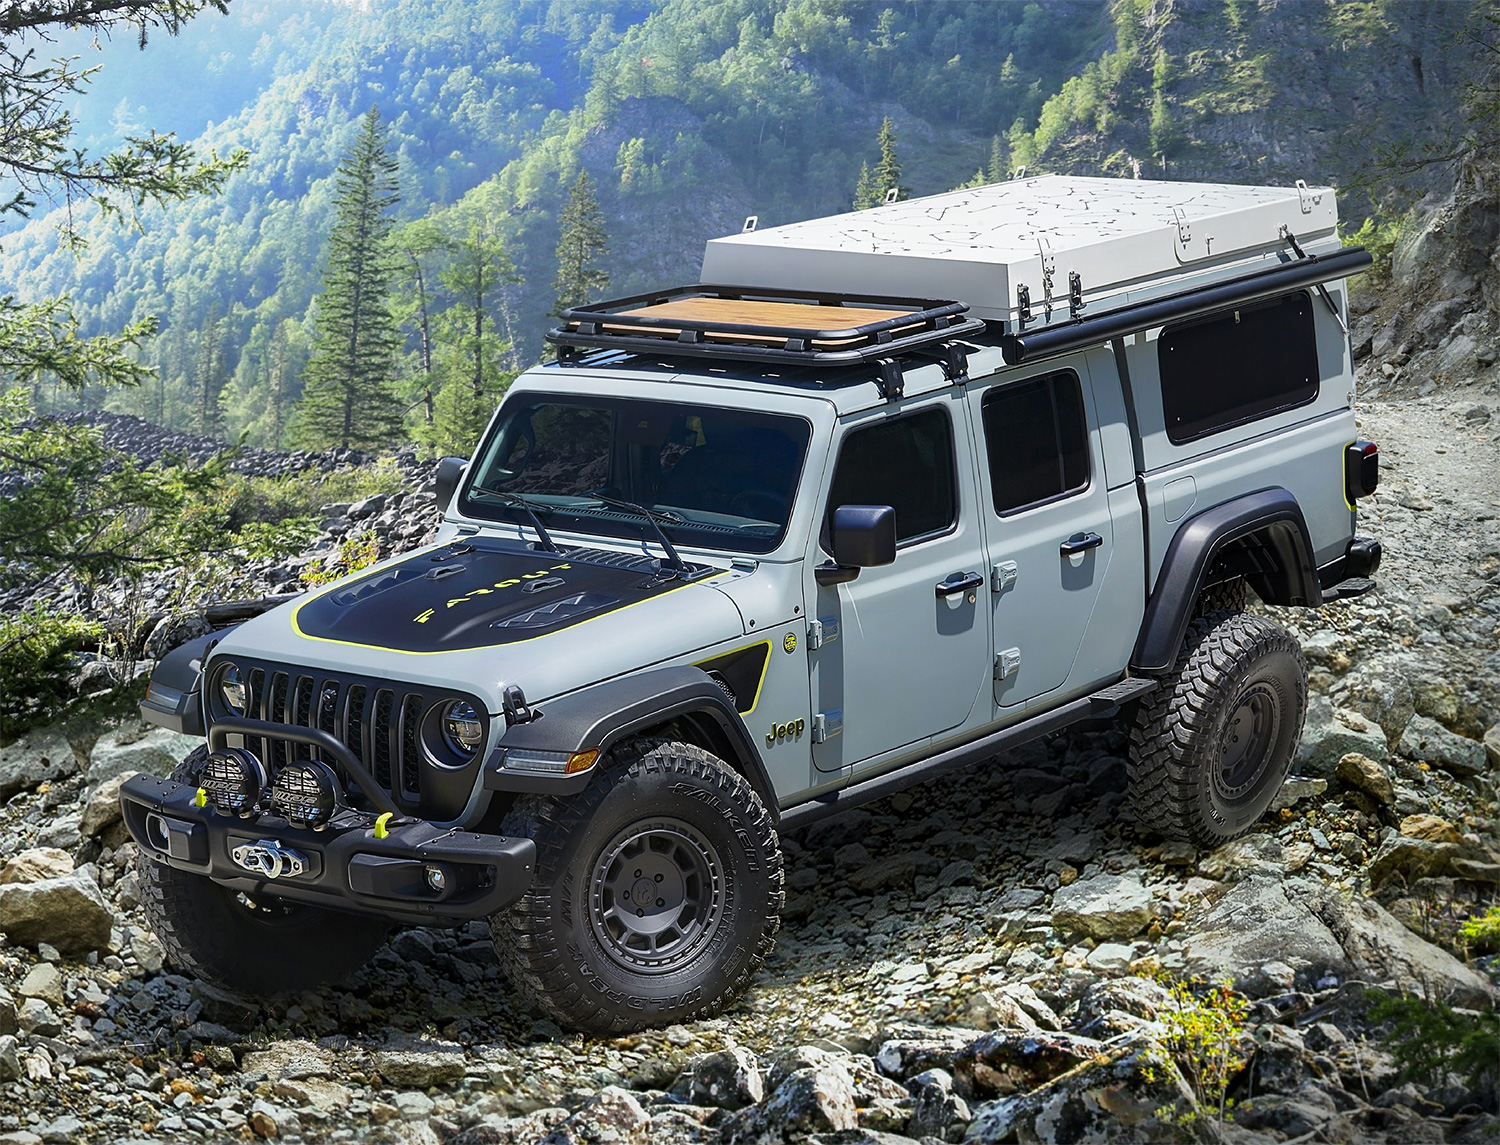 Jeep Unveils Farout Concept Gladiator at werd.com